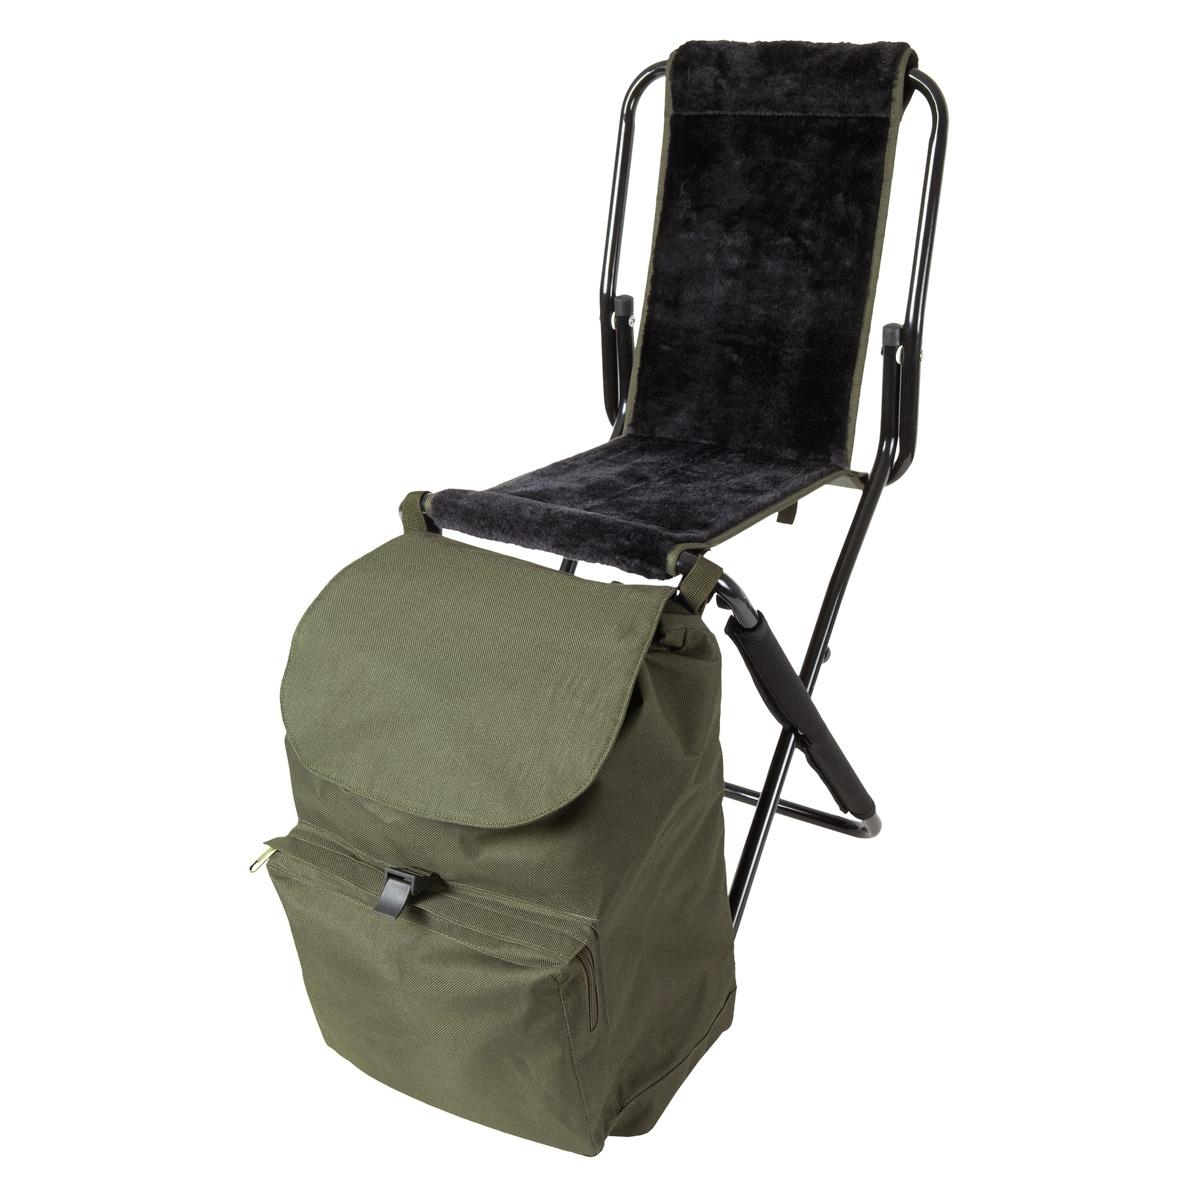 Seeland Rucksack Chair With Back Rest Uttings Co Uk